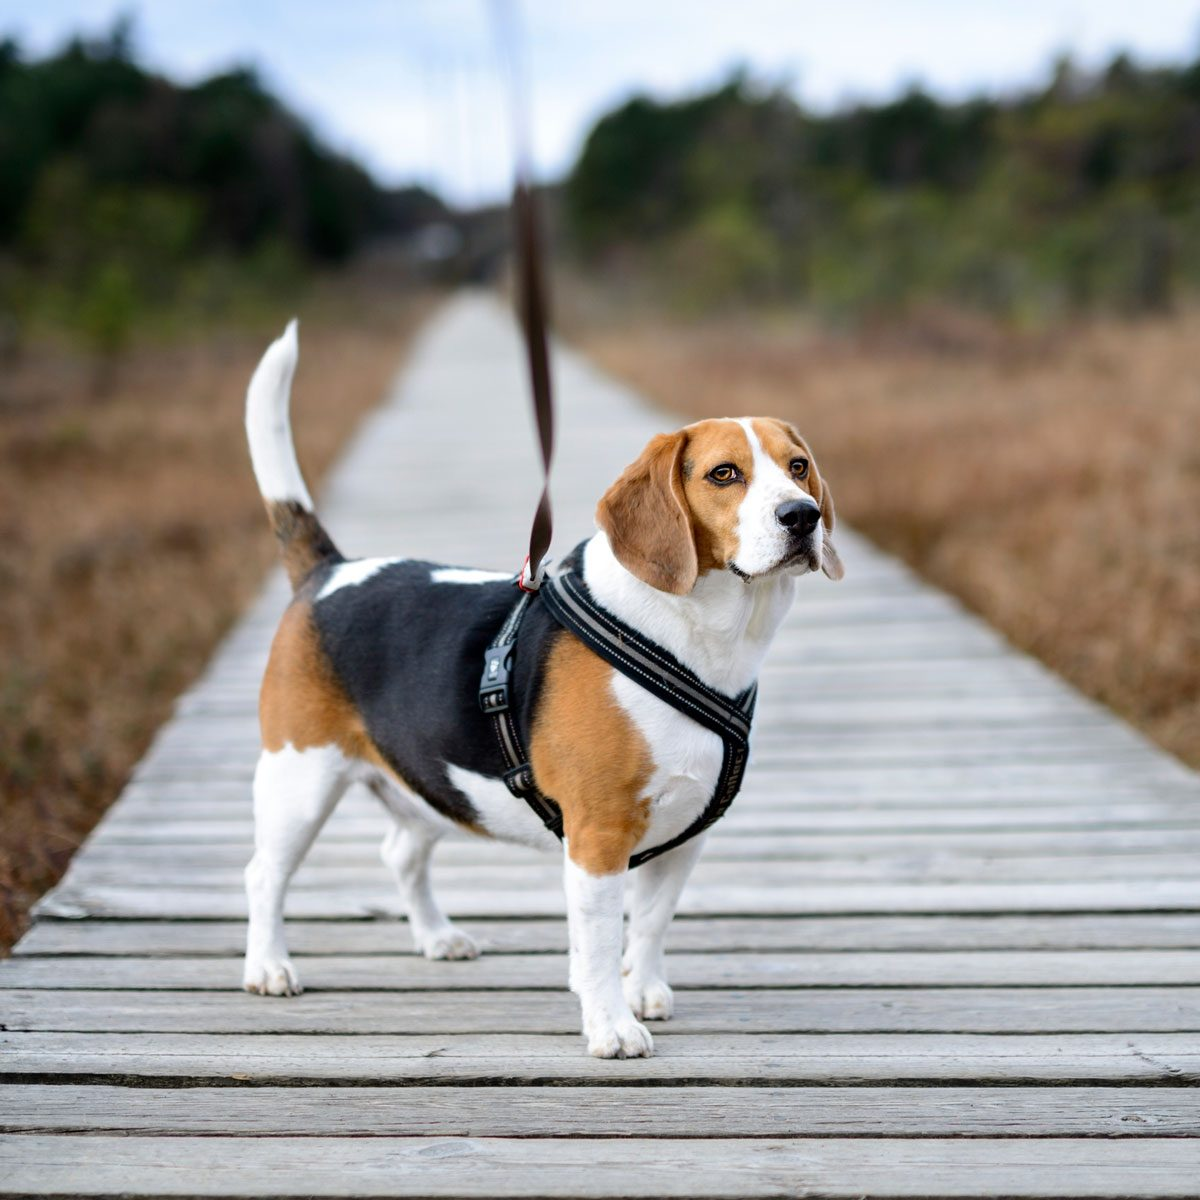 Beagle wearing a dog harness